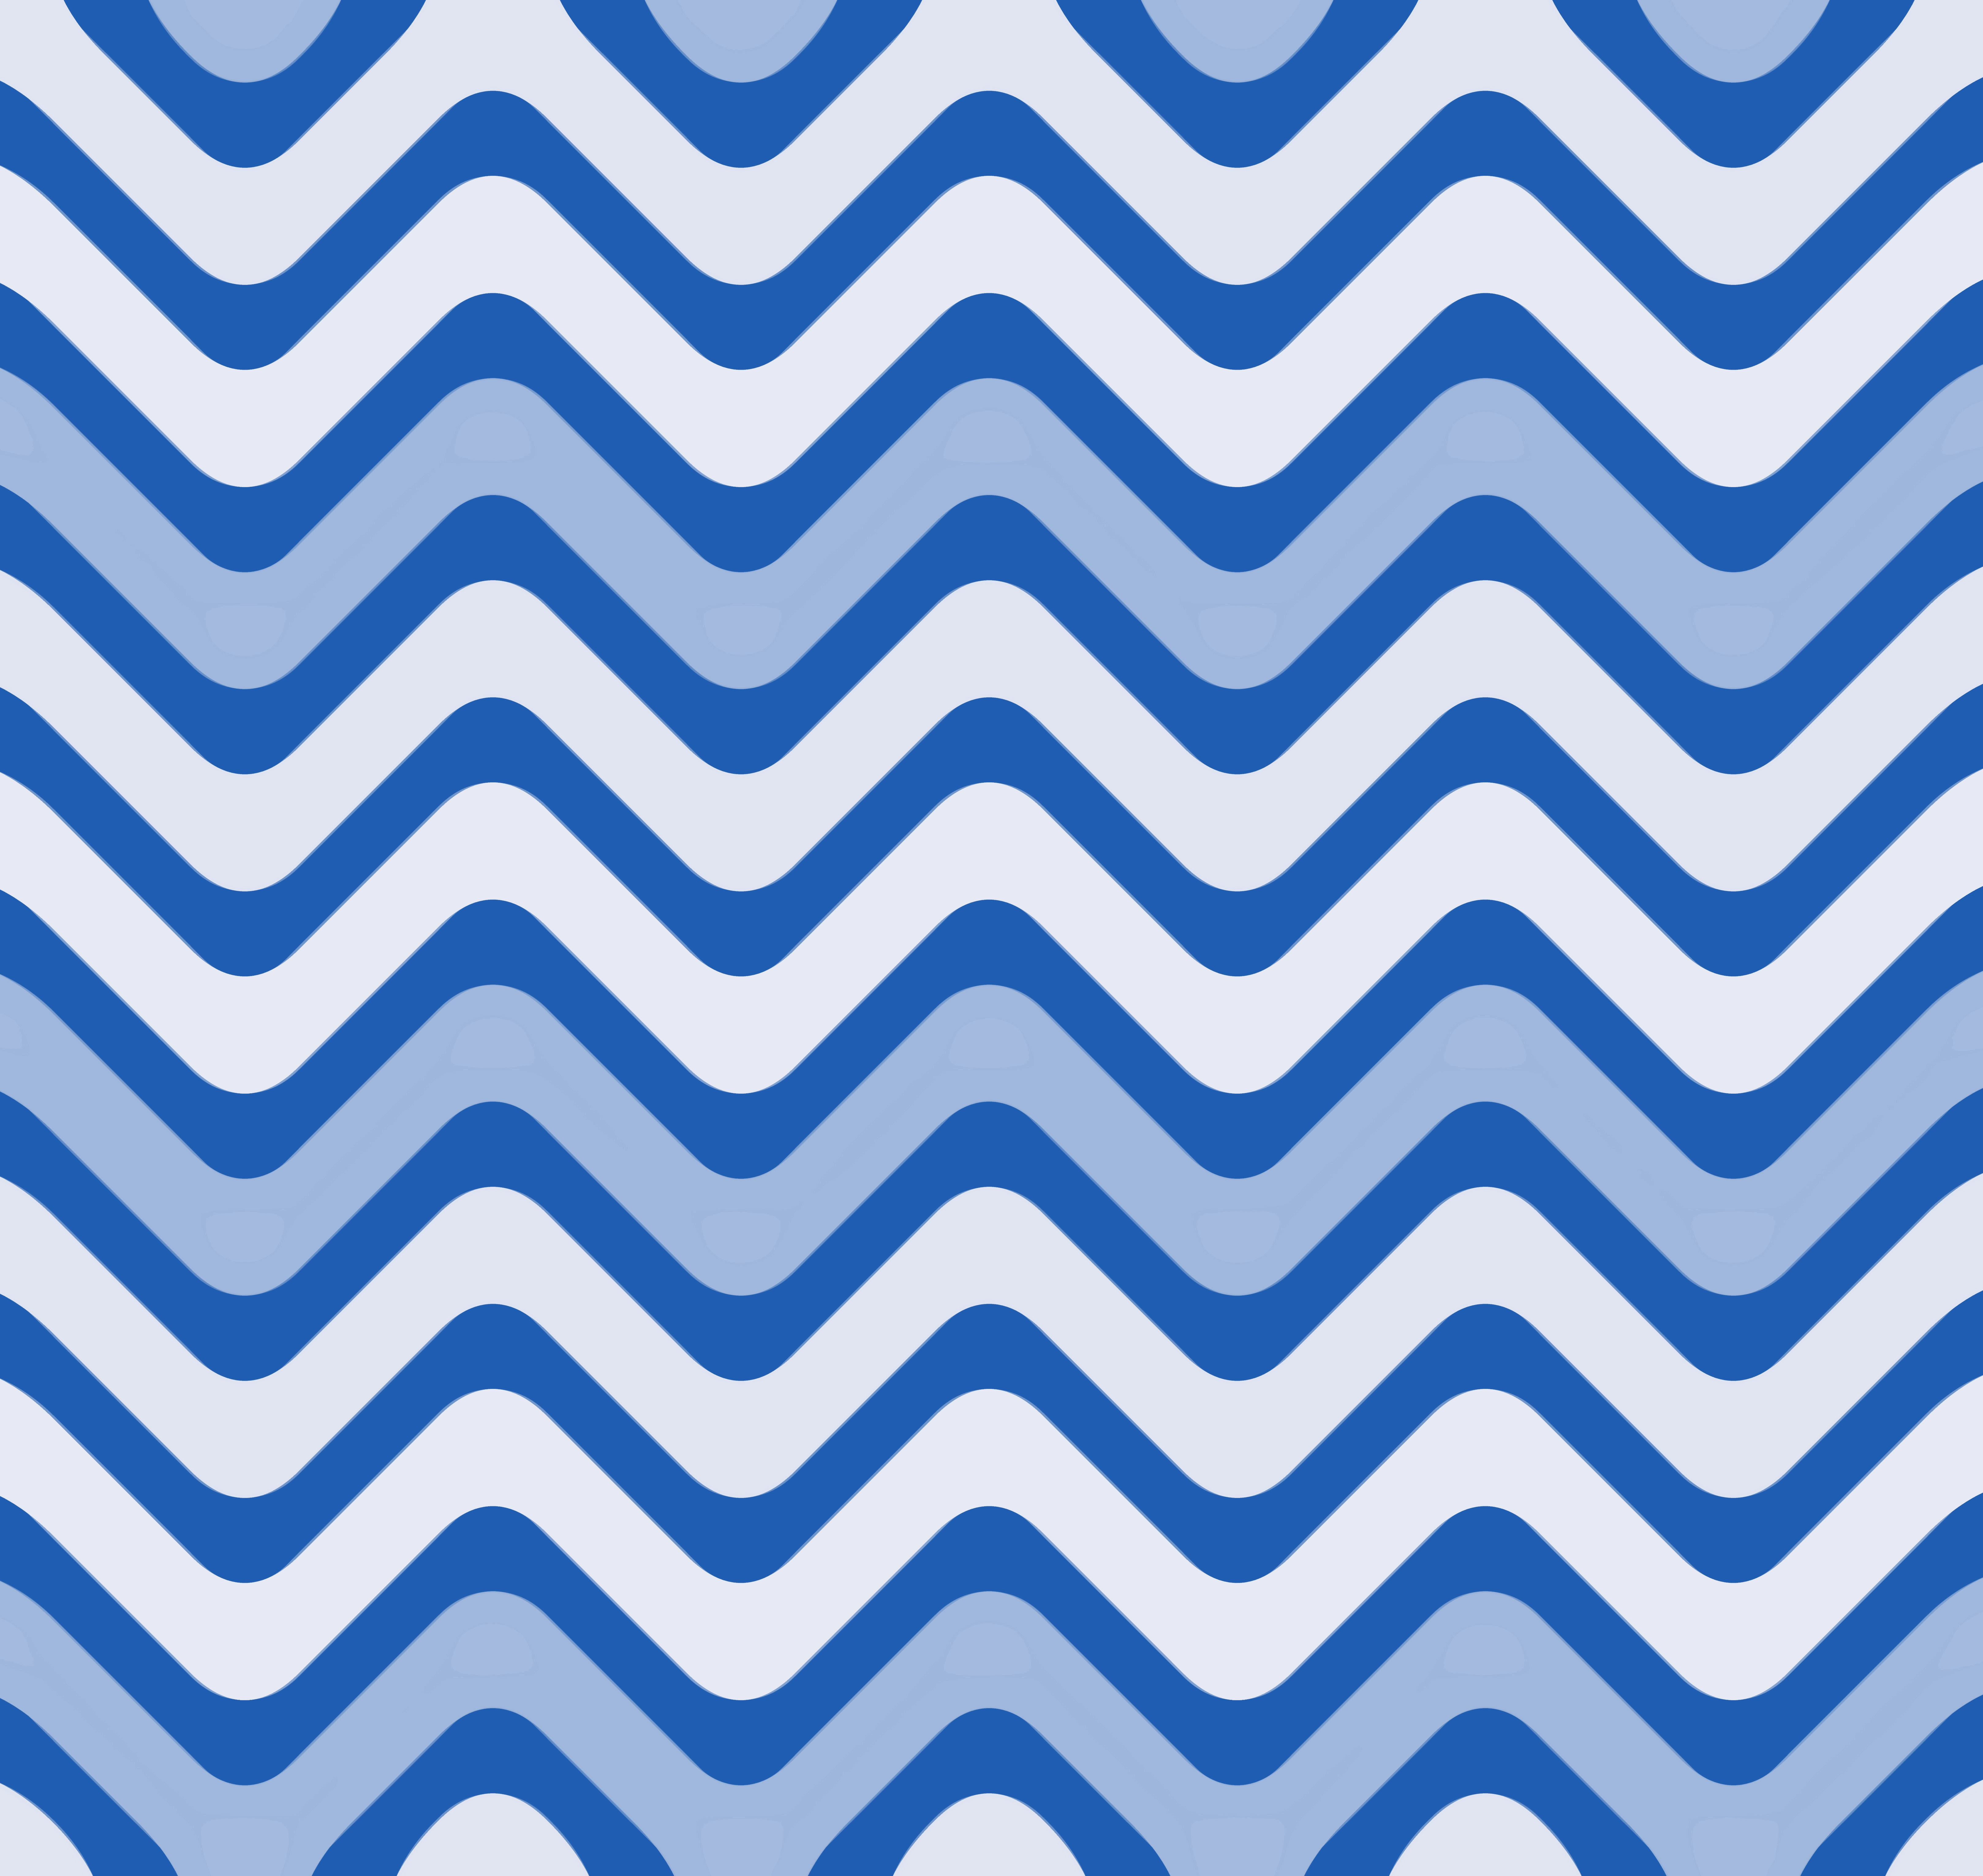 Pictures of wavy lines Optical Illusions - Howz Yer Teeth?!